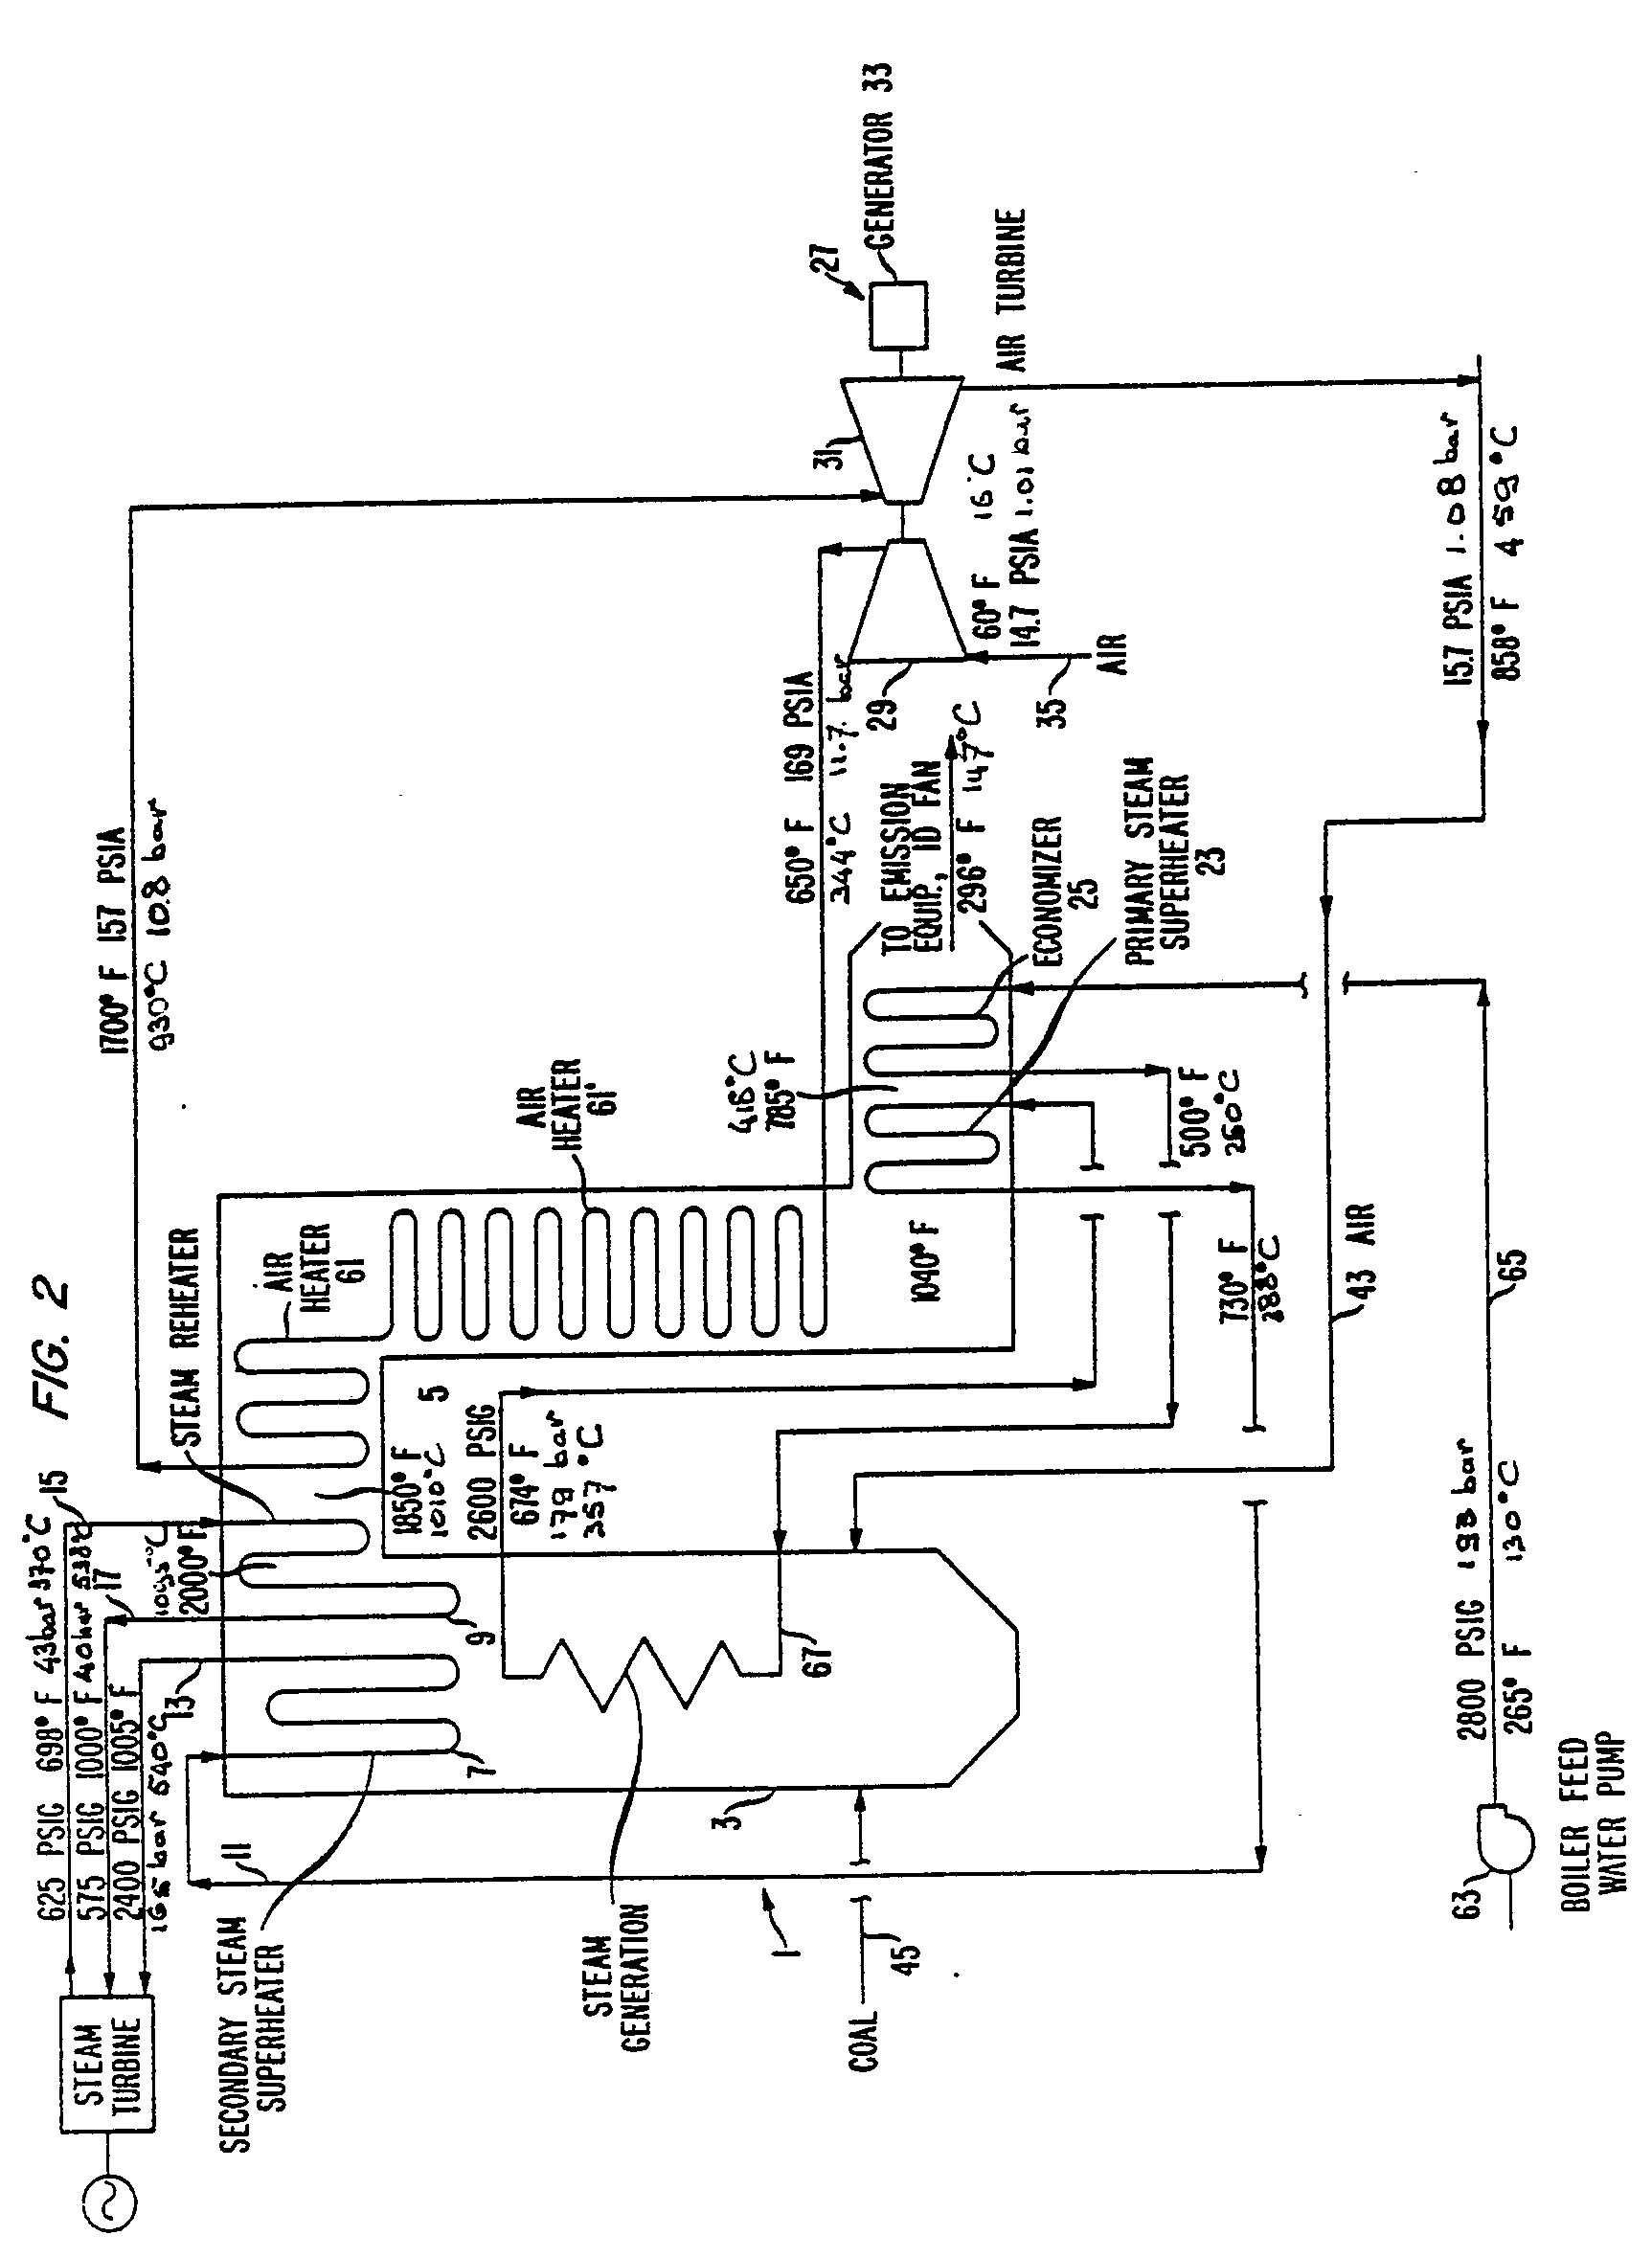 2001 oldsmobile silhouette alternator diagram html